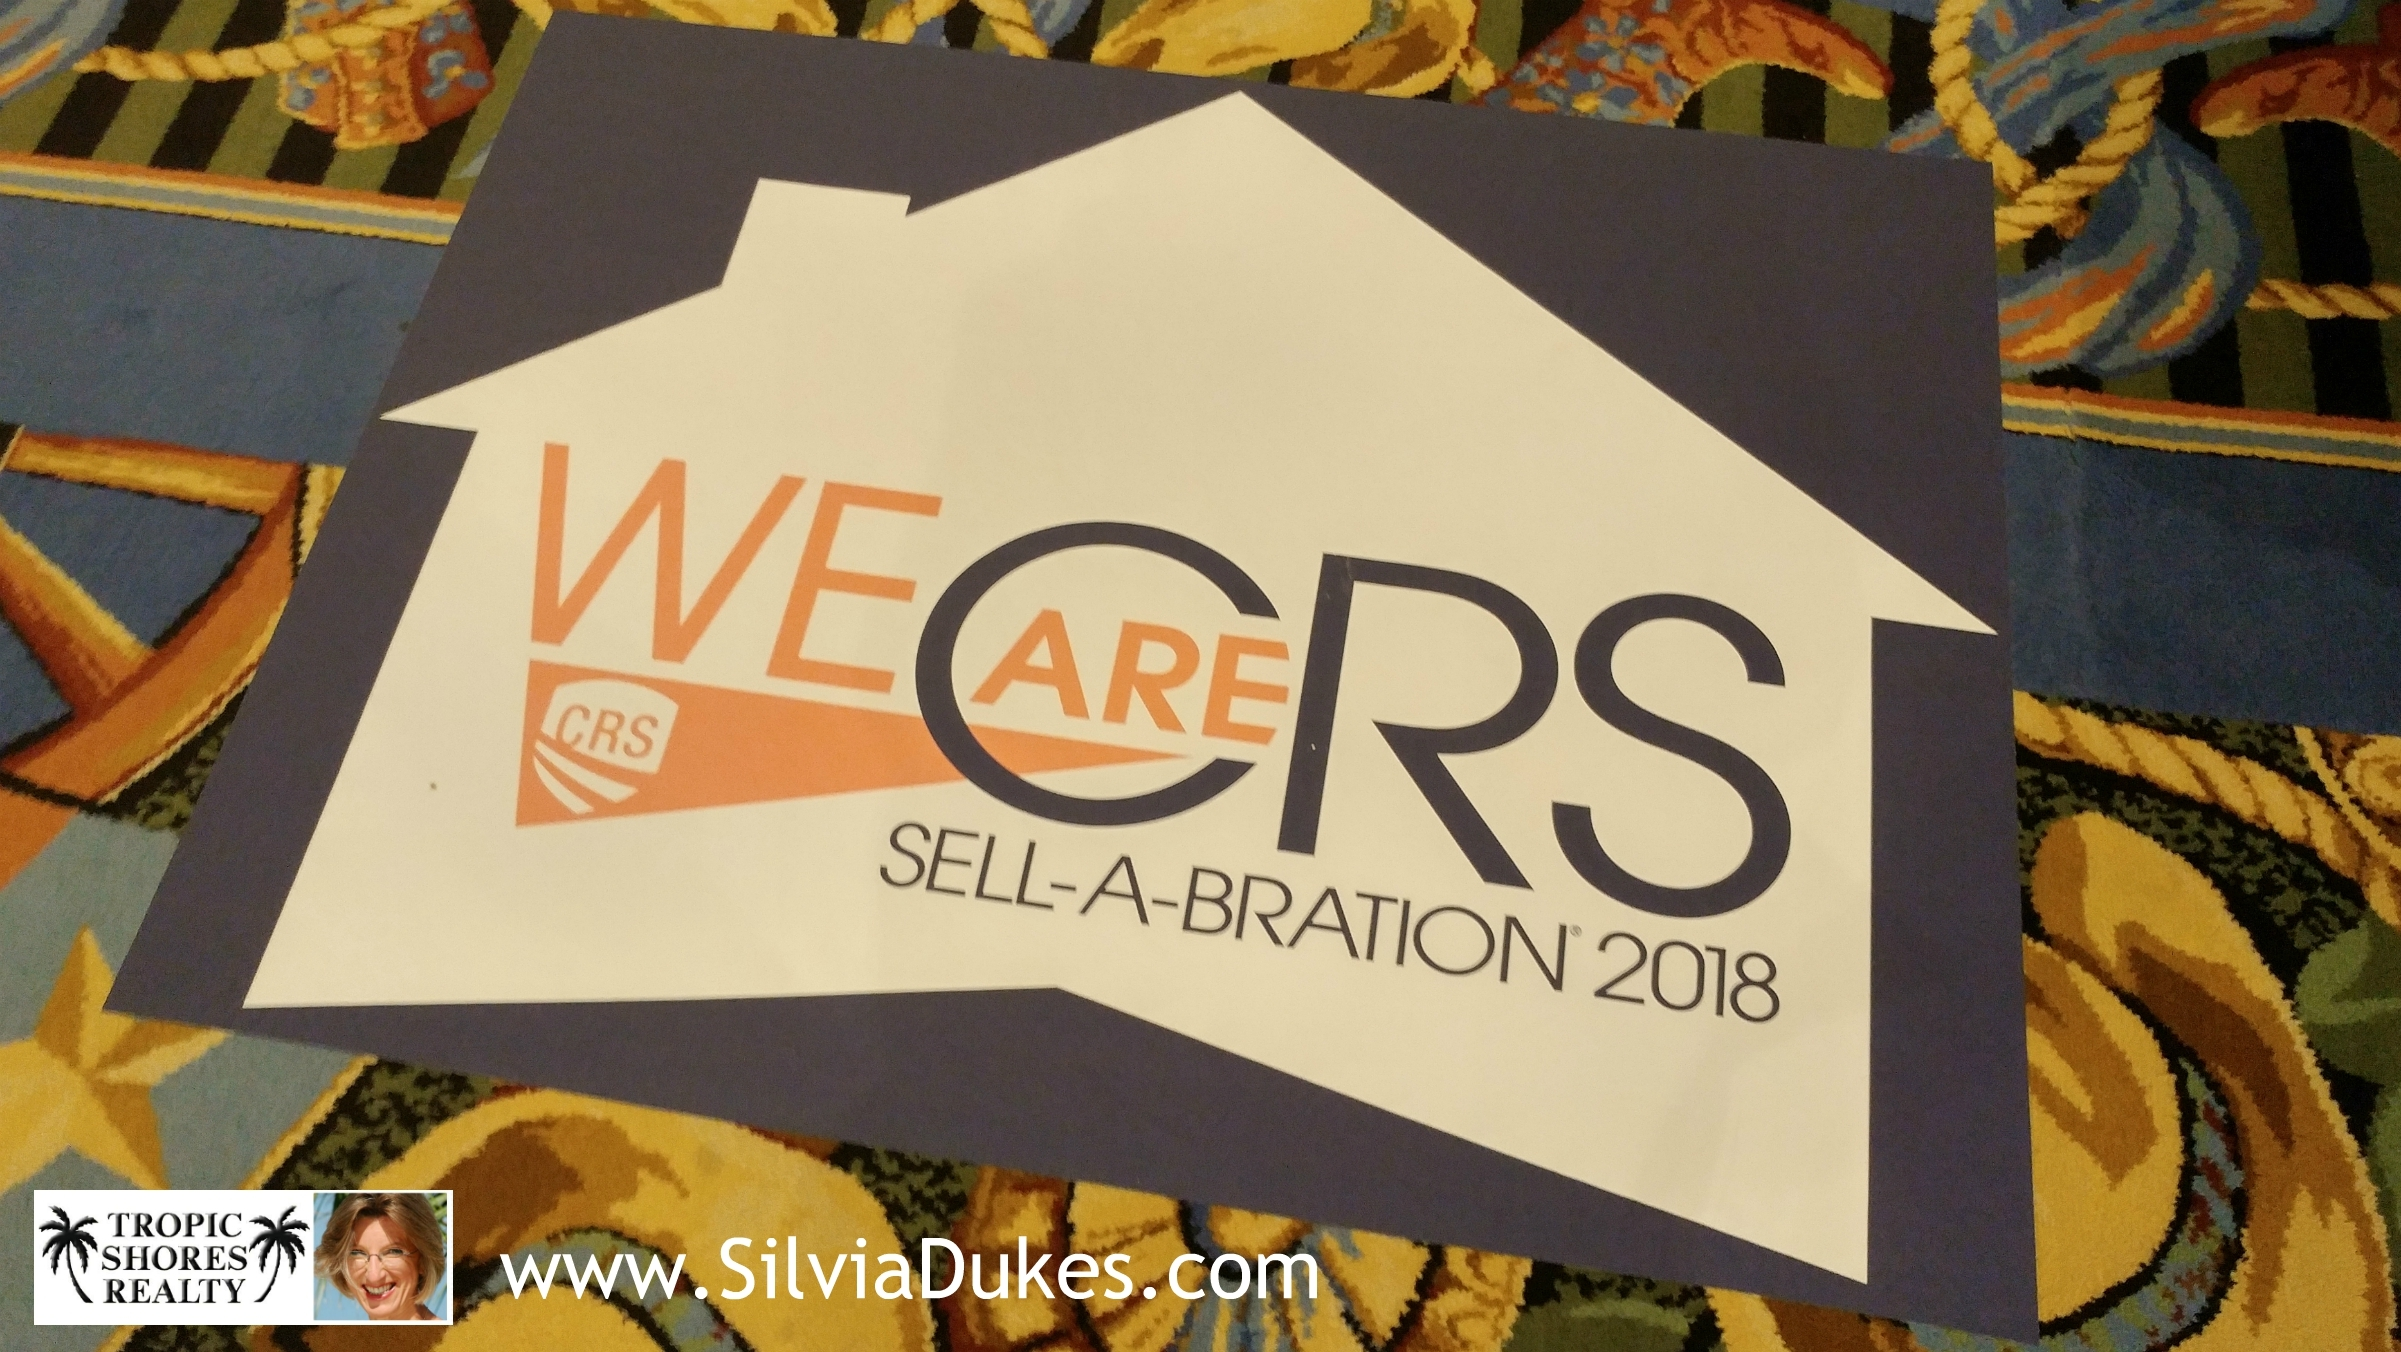 We are CRS Sell-a-Bration 2018 Photo by Silvia Dukes